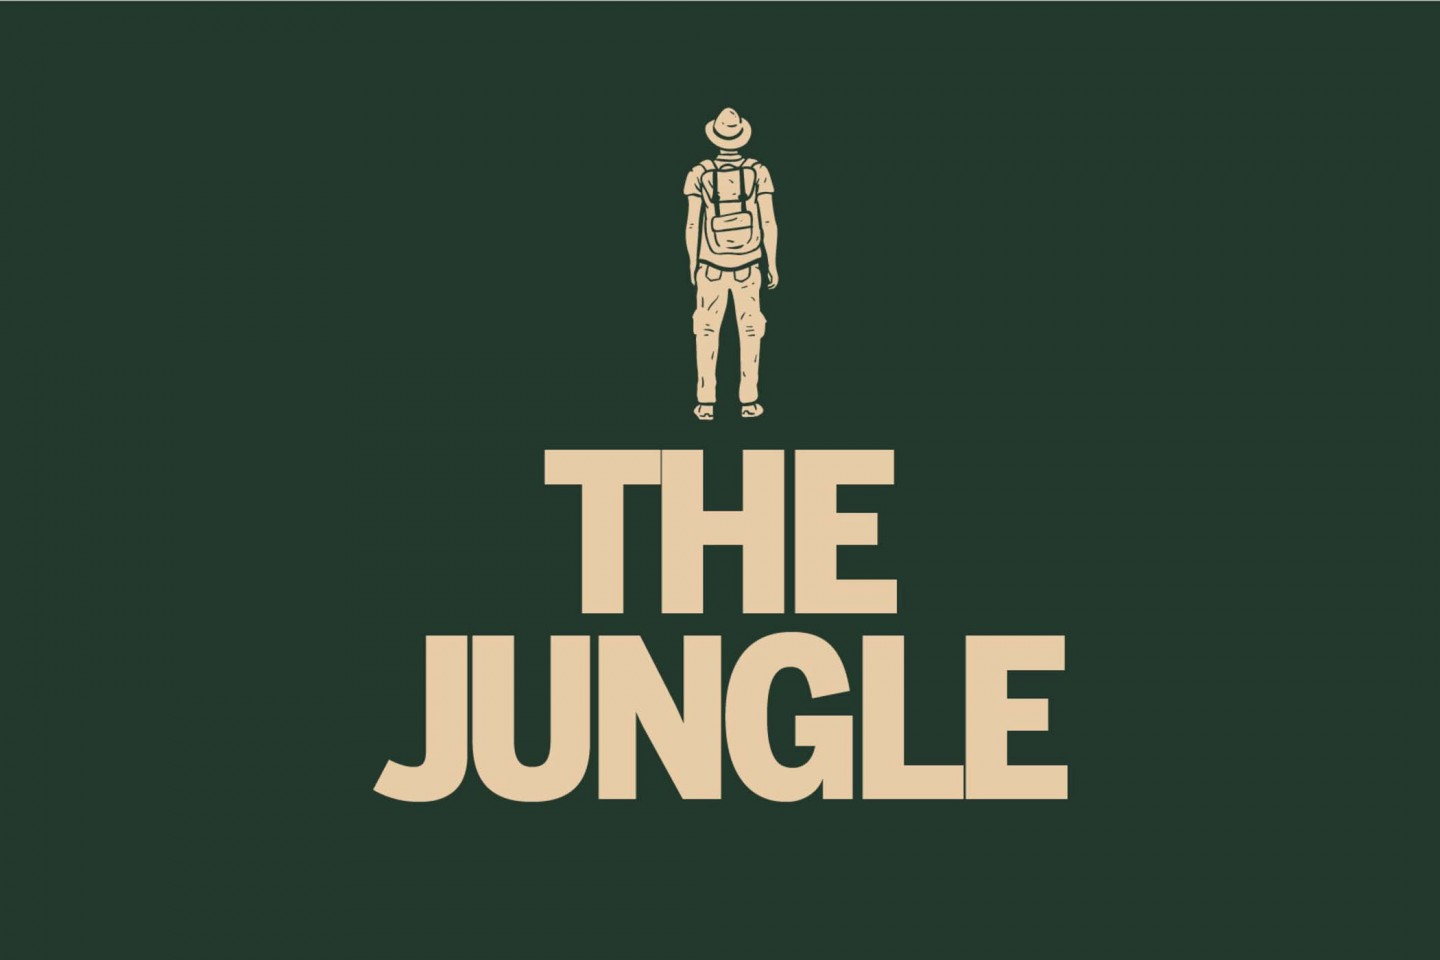 The Jungle podcast logo